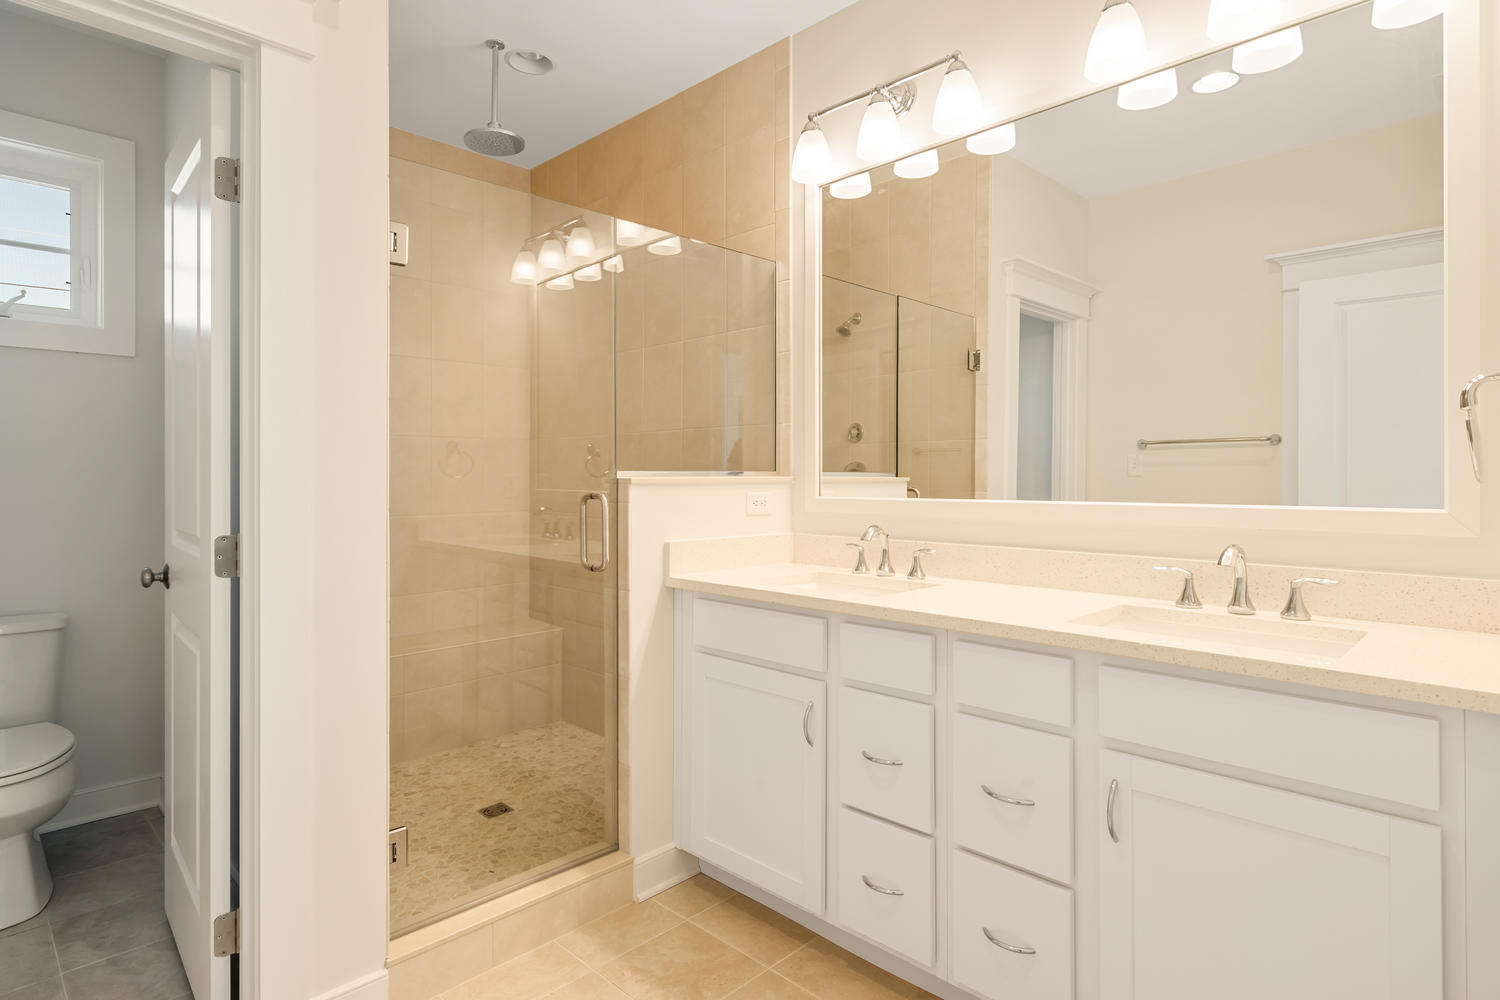 Owners Bath with White Cabinets and Bright Lighting